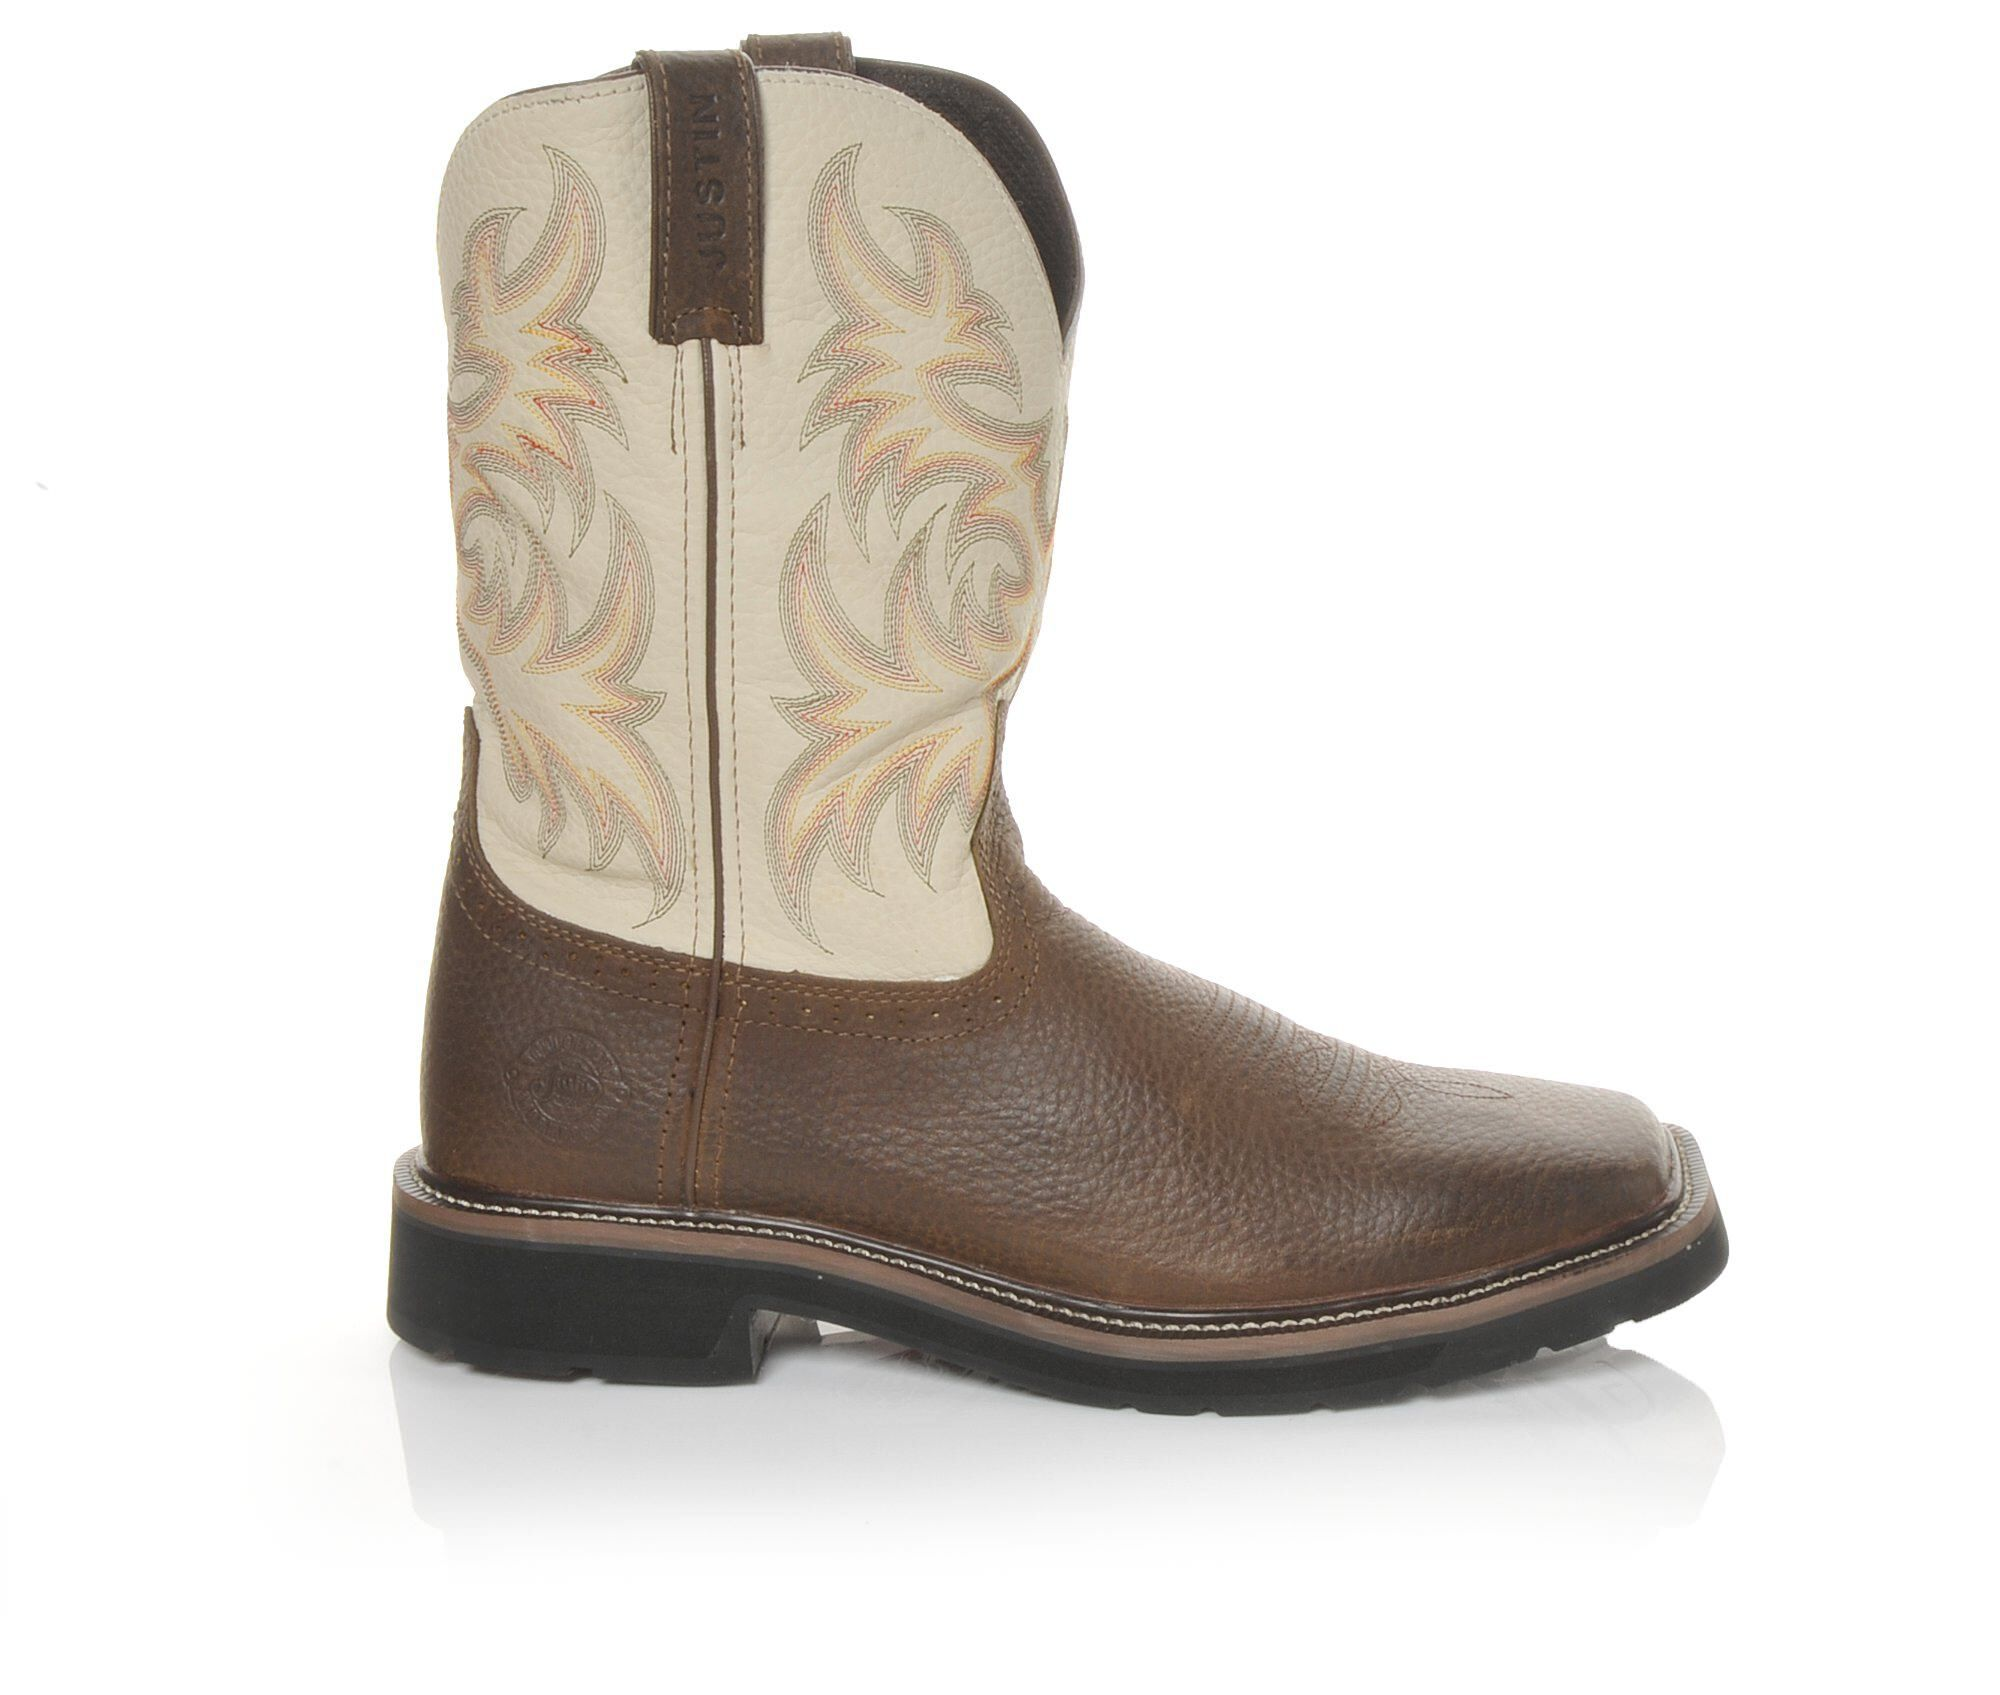 Mens Justin Boots WK 4683 Stampede 11 In Work Boots